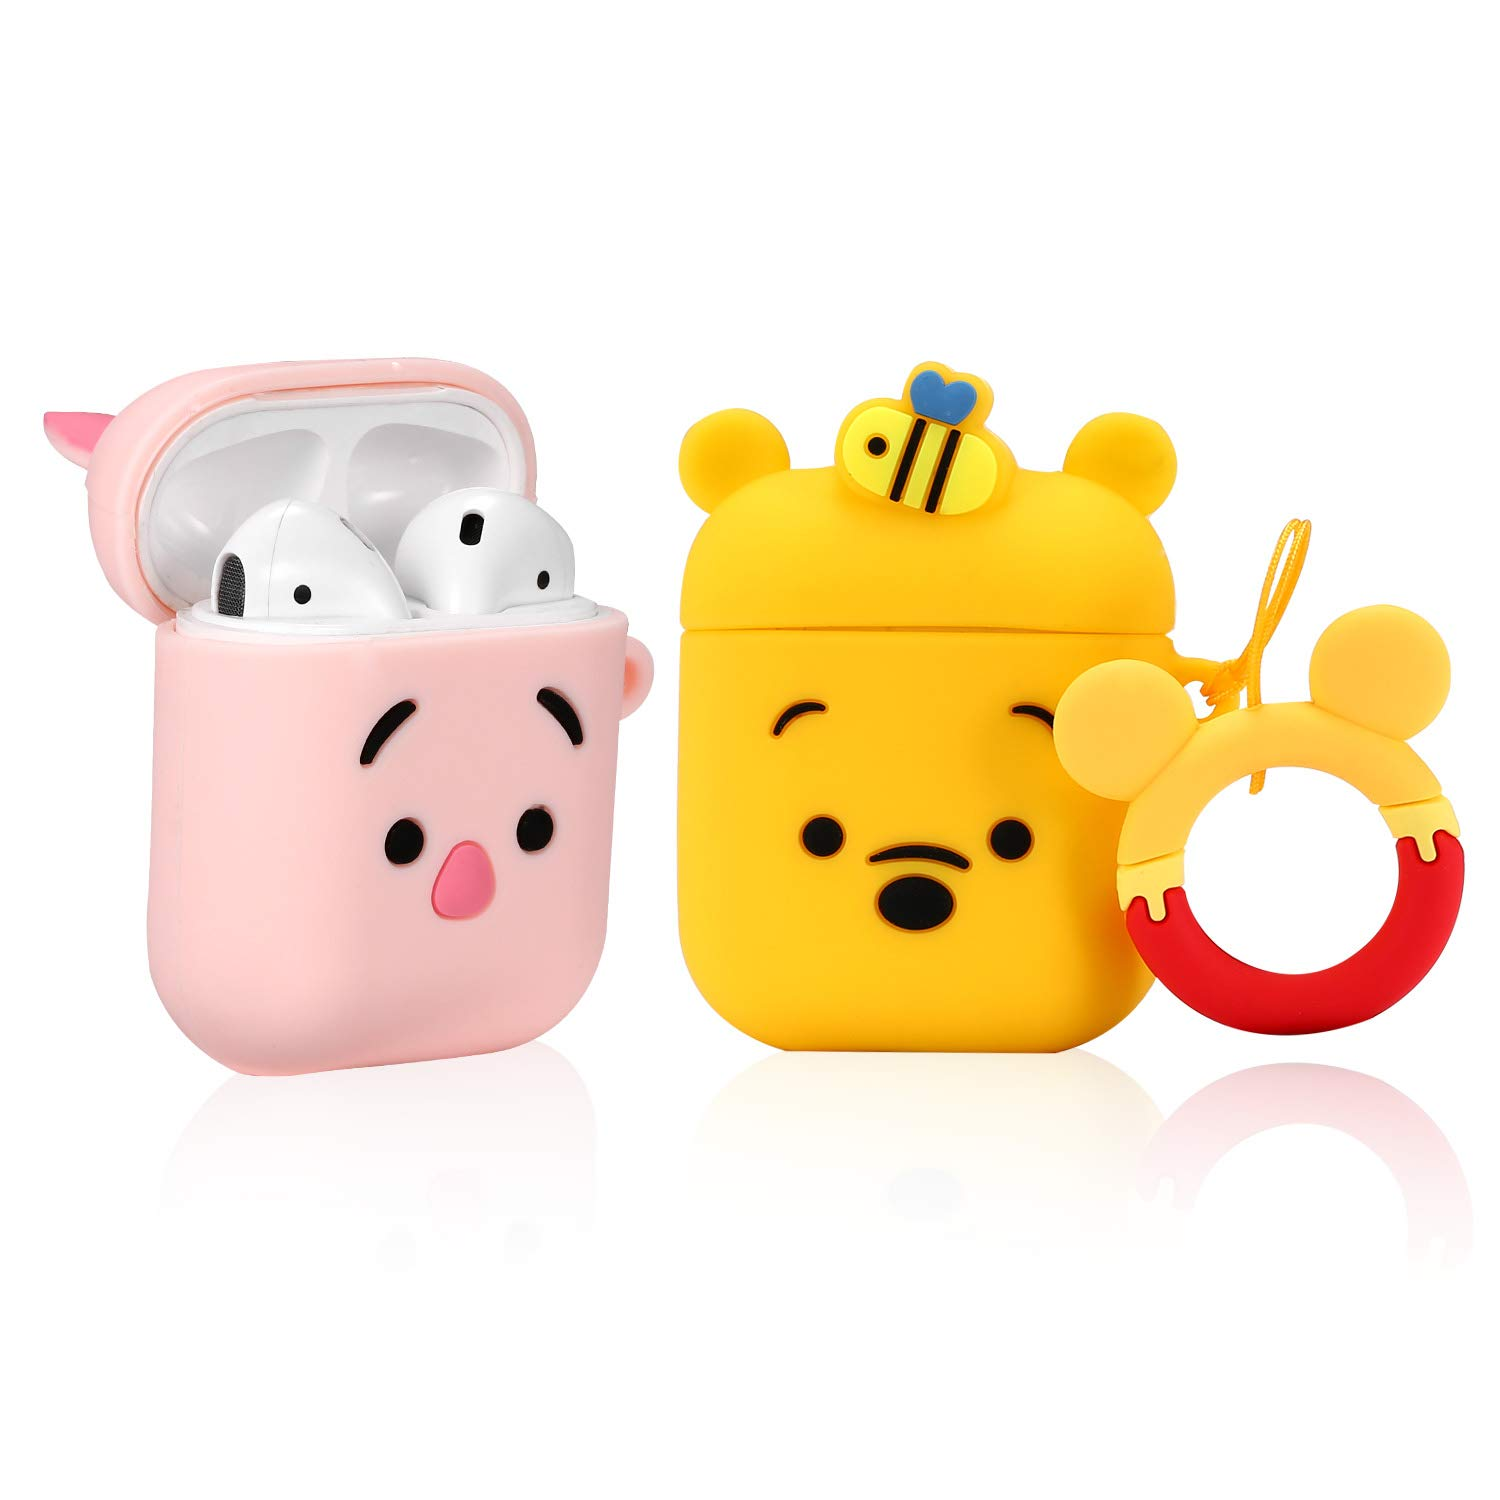 Lupct (Winnie & Pig) Case for Airpods 1/2 Cute Soft Silicone,Cartoon 3D Fun Animal Pattern Cover for Girls Kids Teens Character Design Airpod Funny Kawaii Kits Cases for Air pods (2 Pack)